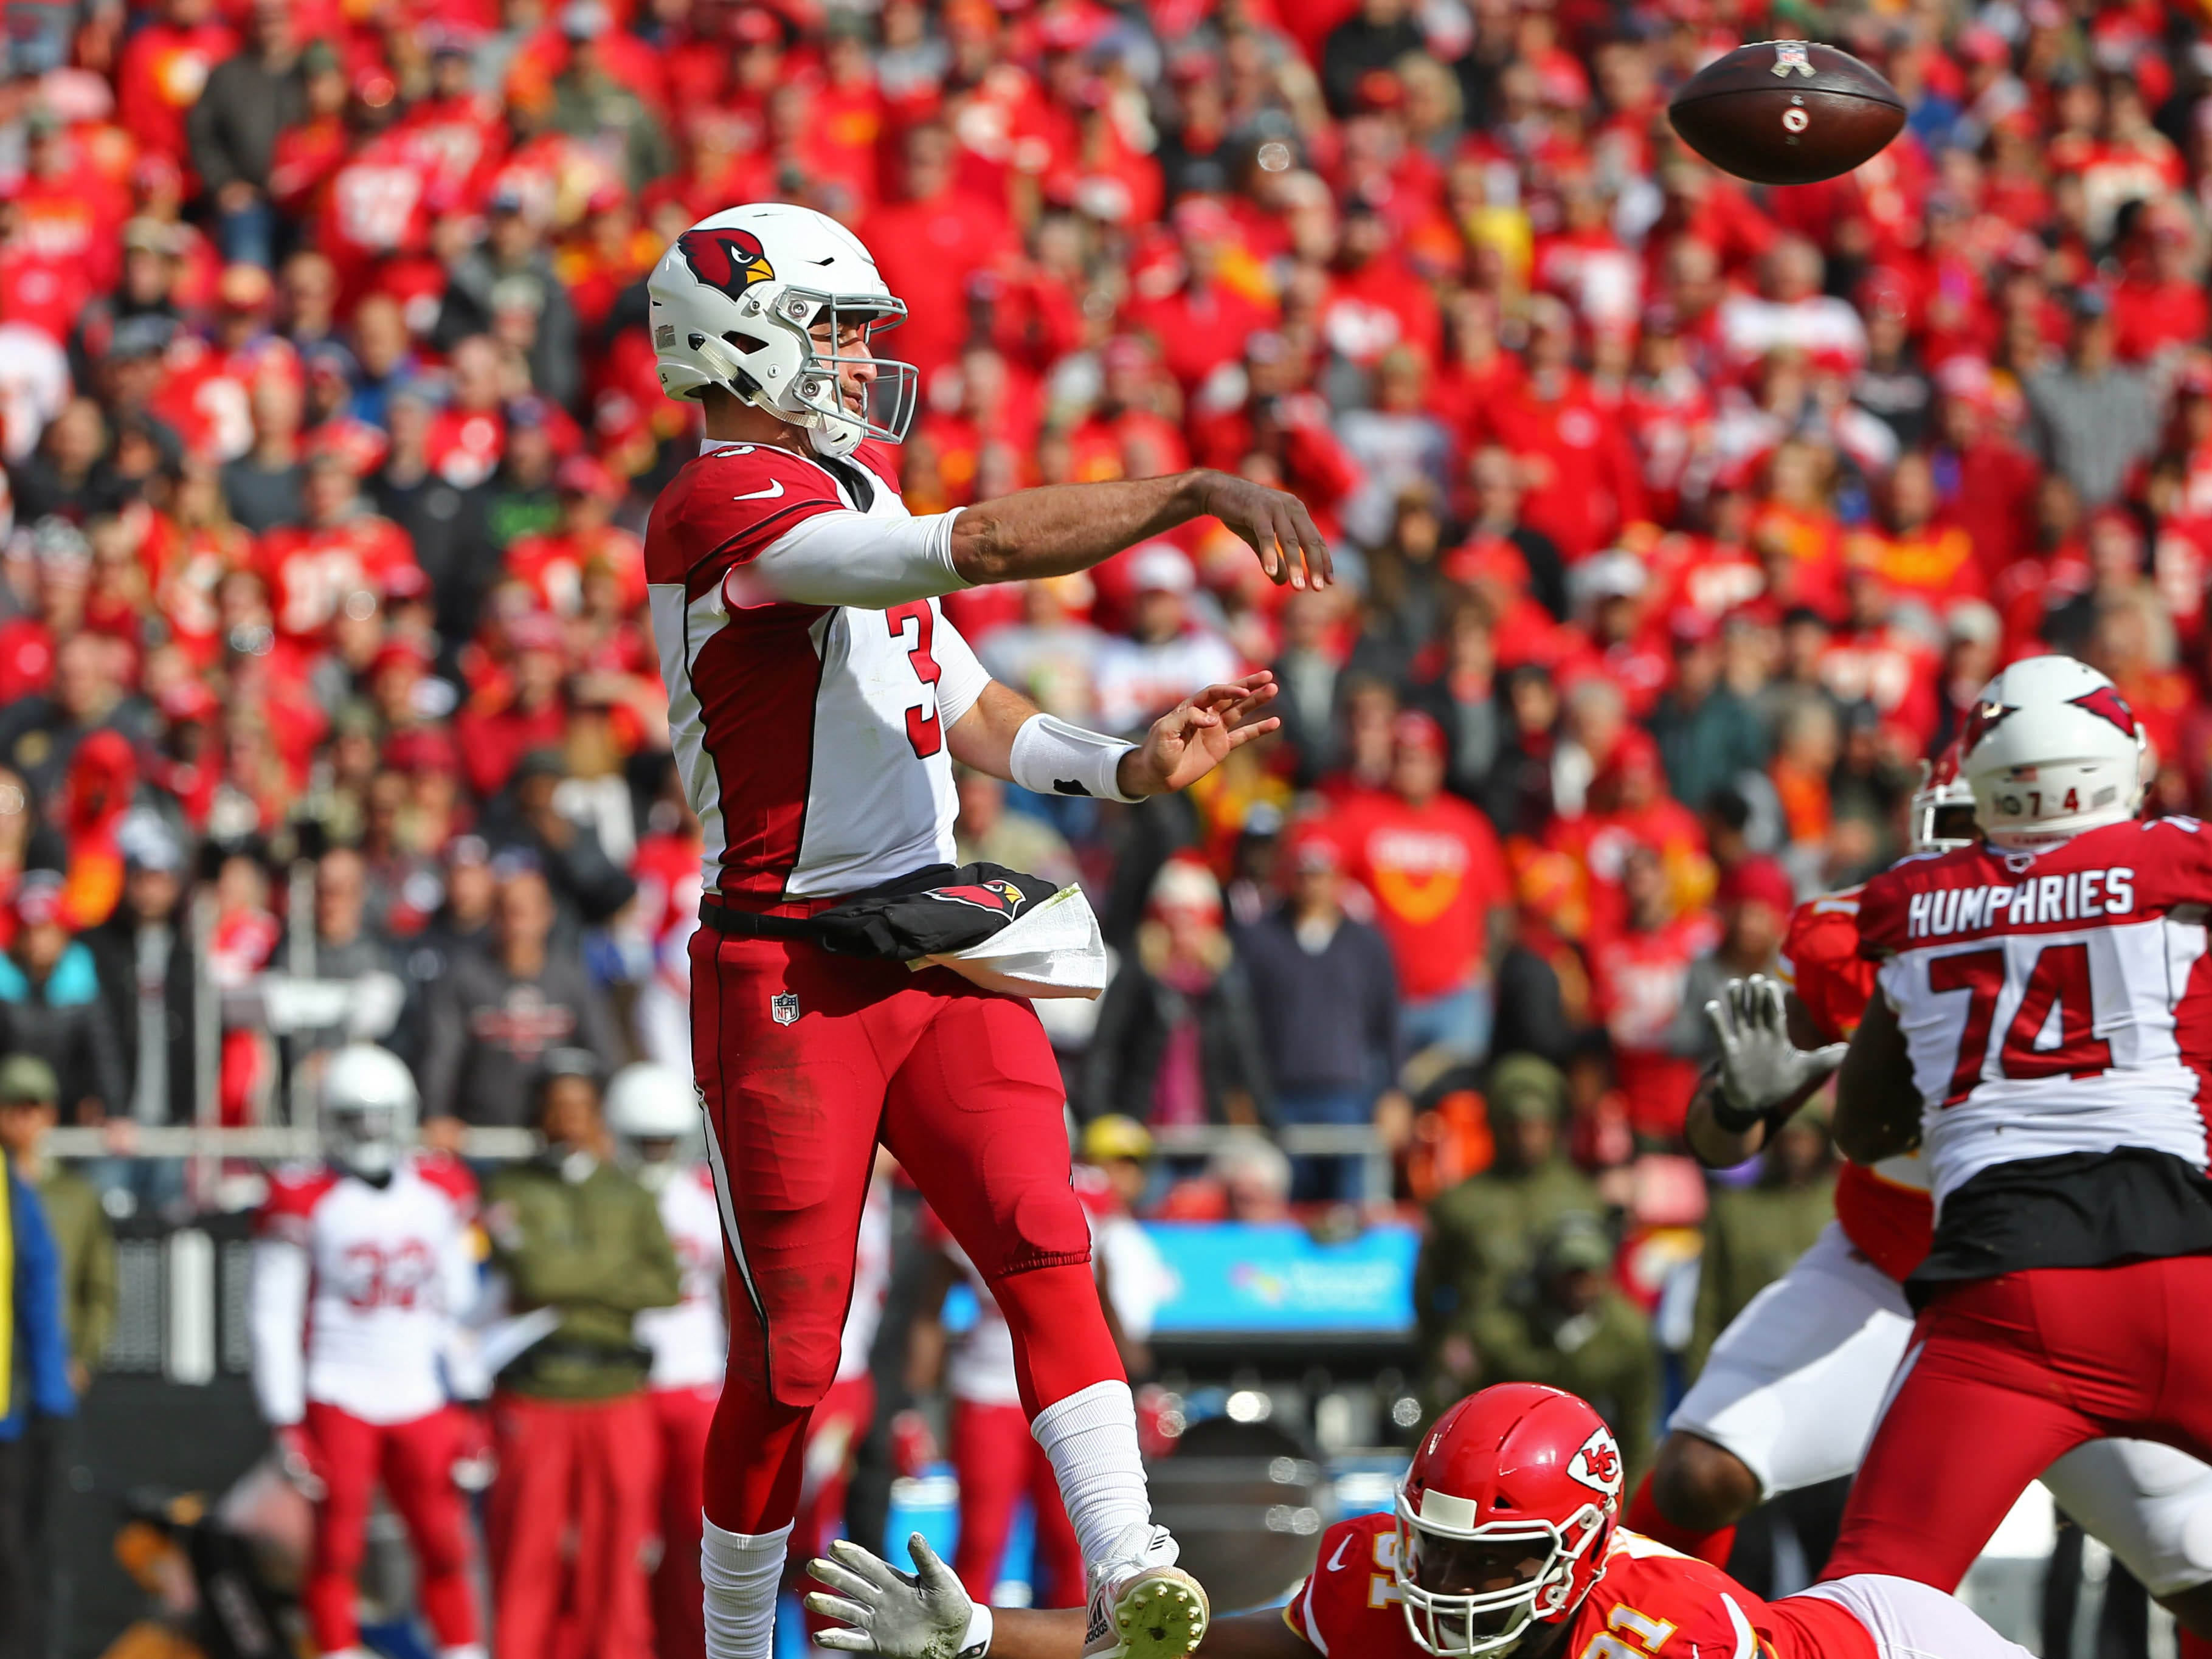 Nov 11, 2018; Kansas City, MO, USA; Arizona Cardinals quarterback Josh Rosen (3) throws a pass as Kansas City Chiefs defensive tackle Derrick Nnadi (91) defends in the first half at Arrowhead Stadium. Mandatory Credit: Jay Biggerstaff-USA TODAY Sports